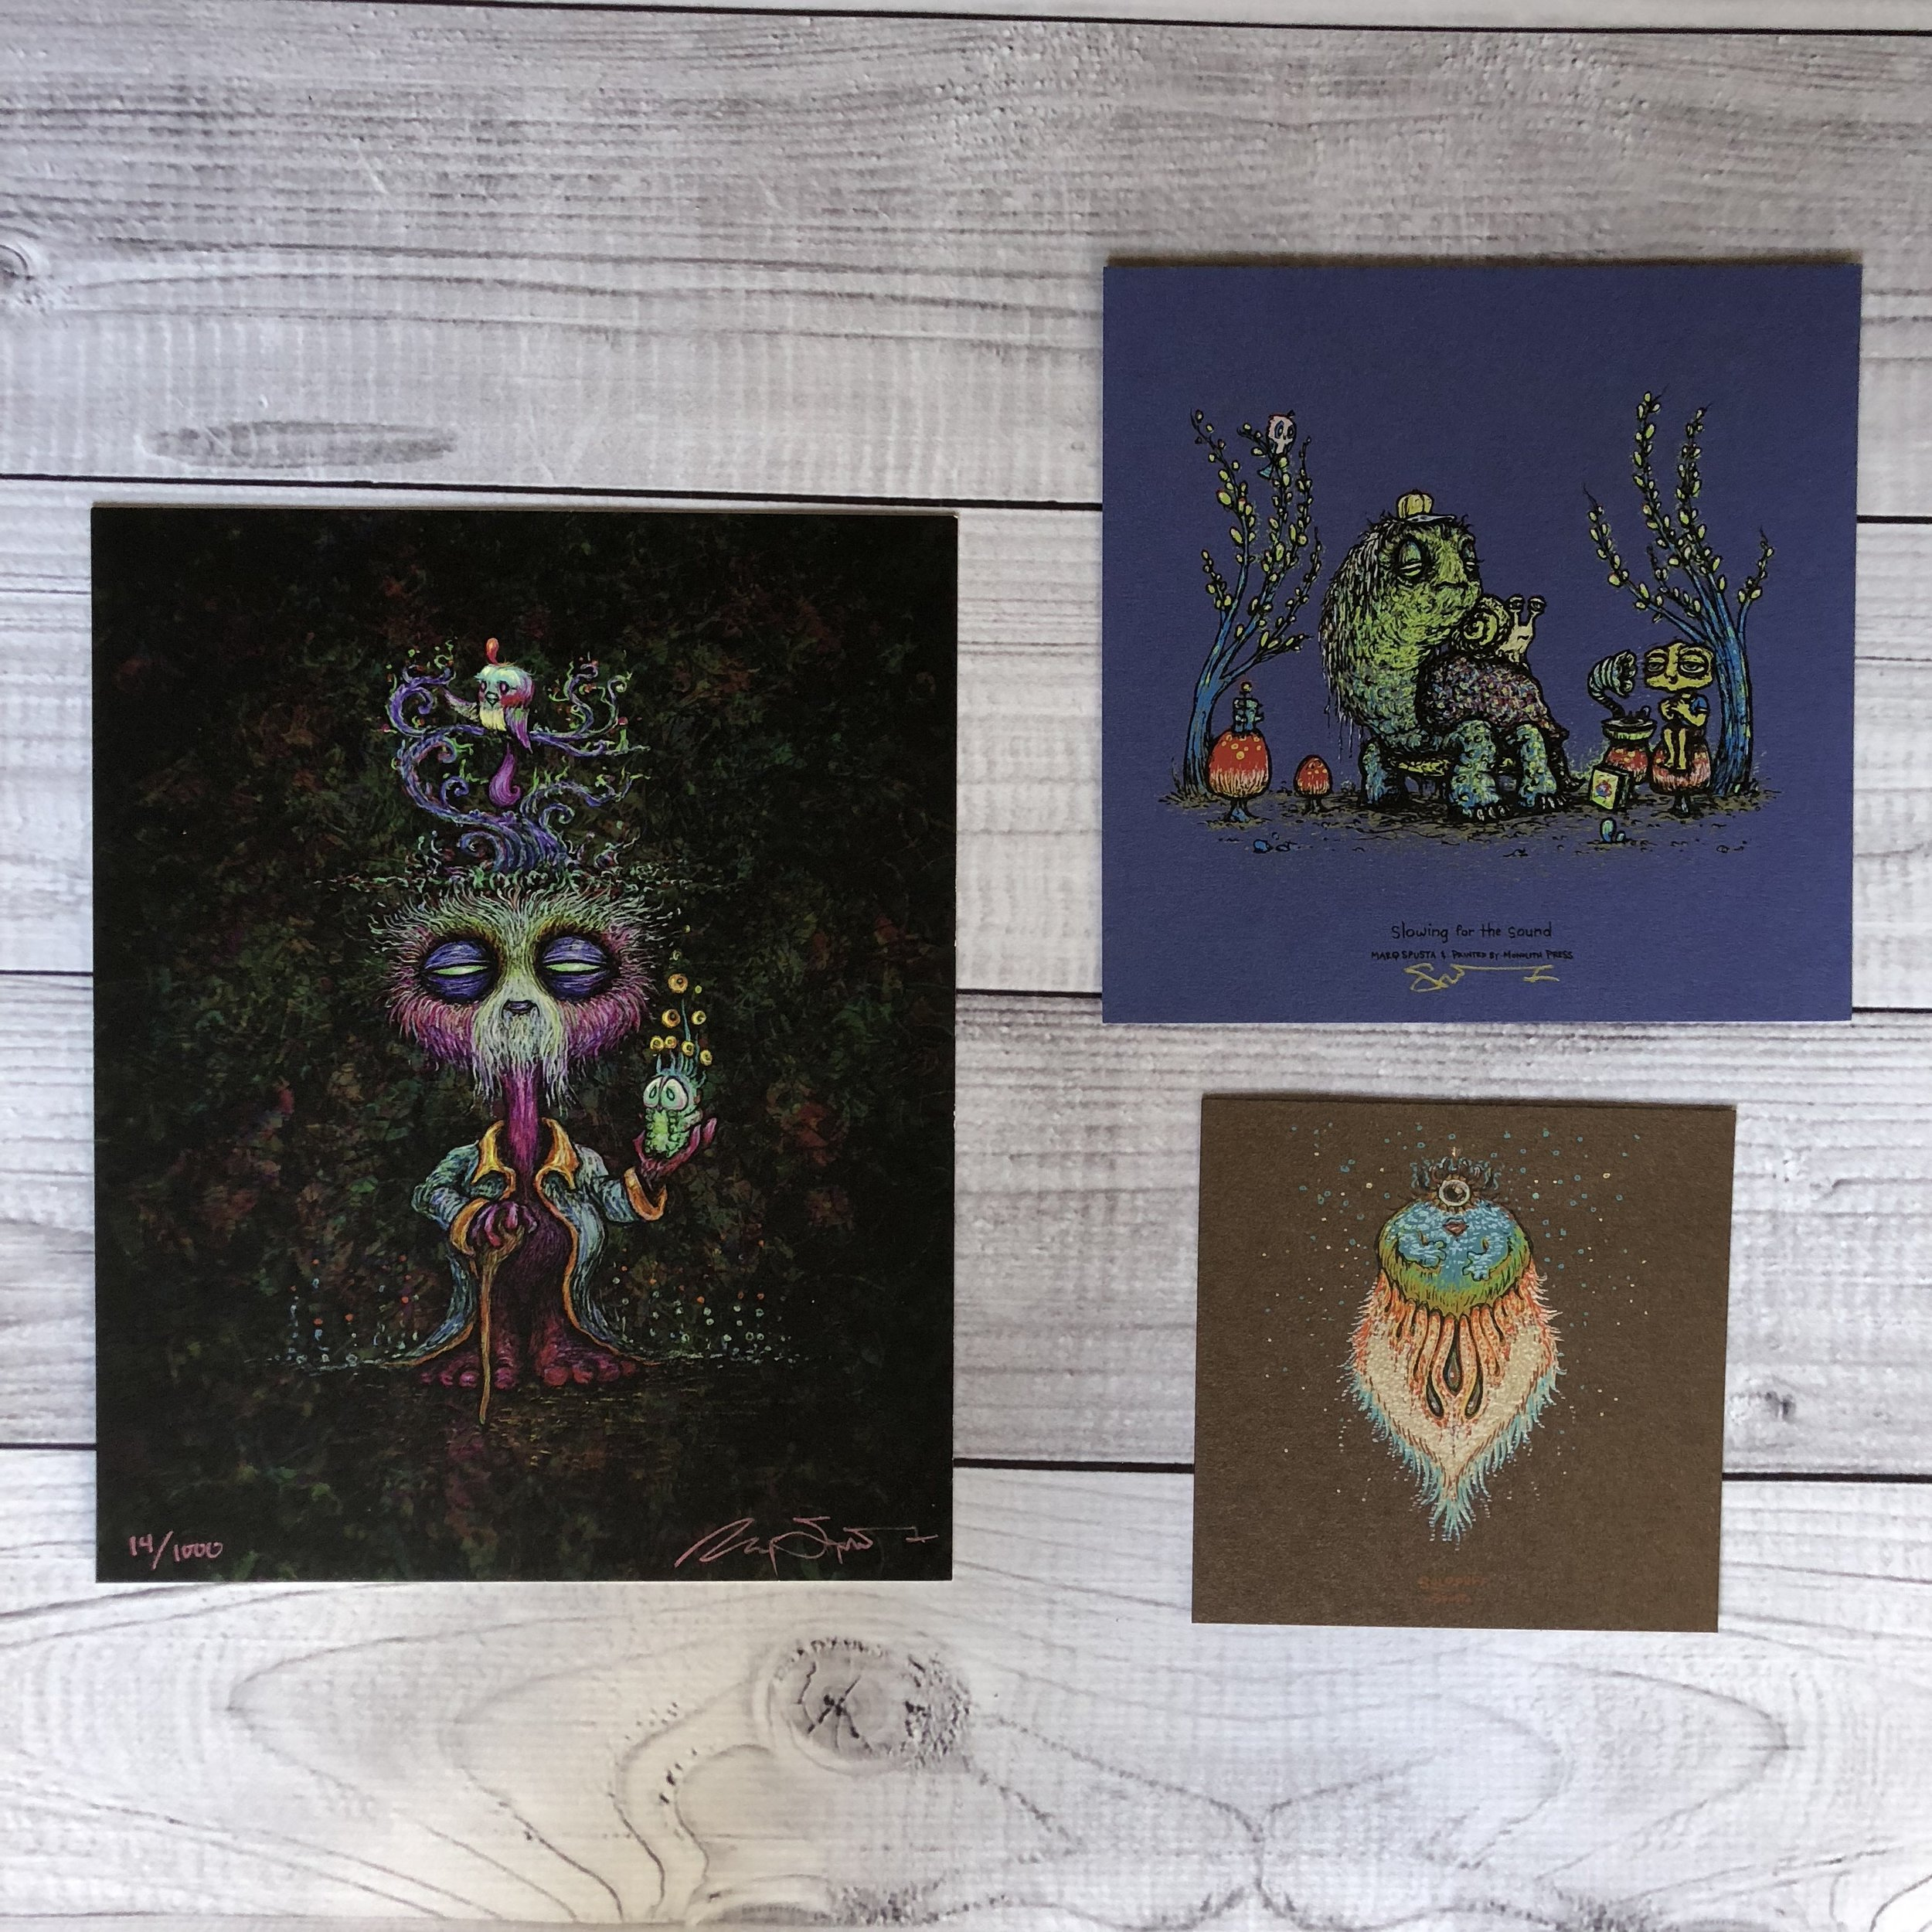 """$90 PACK 2 Includes The Wuz Is (8"""" x 10""""), Slowing for the Sound (7"""" x 7"""") and Solopuff (5"""" x 5"""")"""